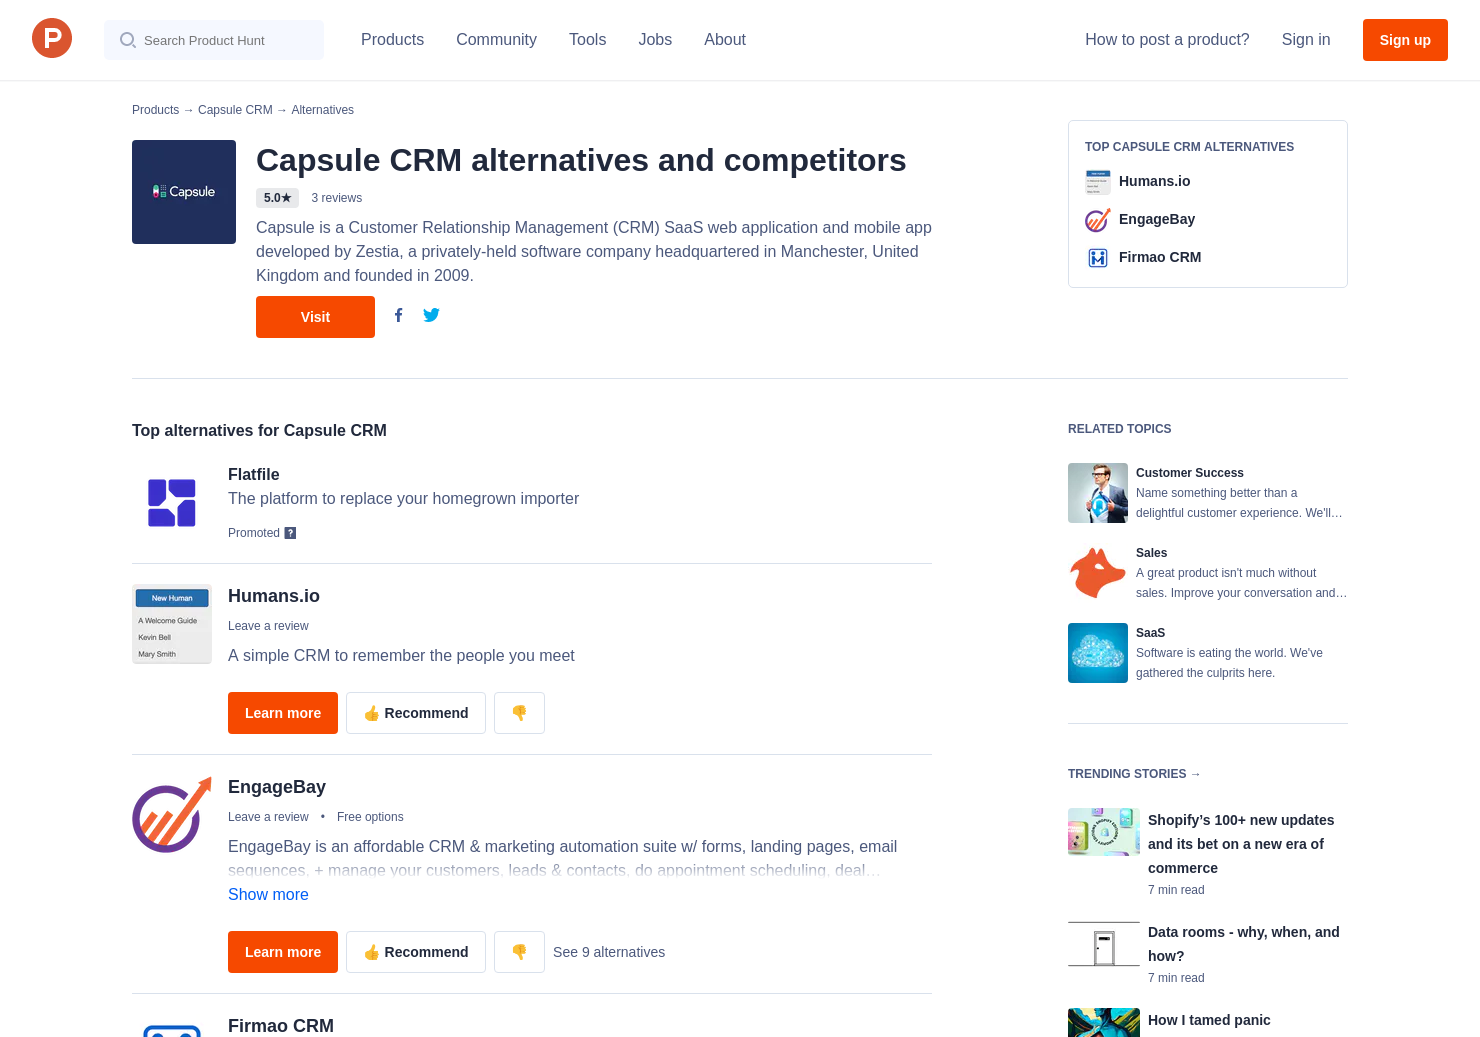 3 Alternatives to Capsule CRM | Product Hunt